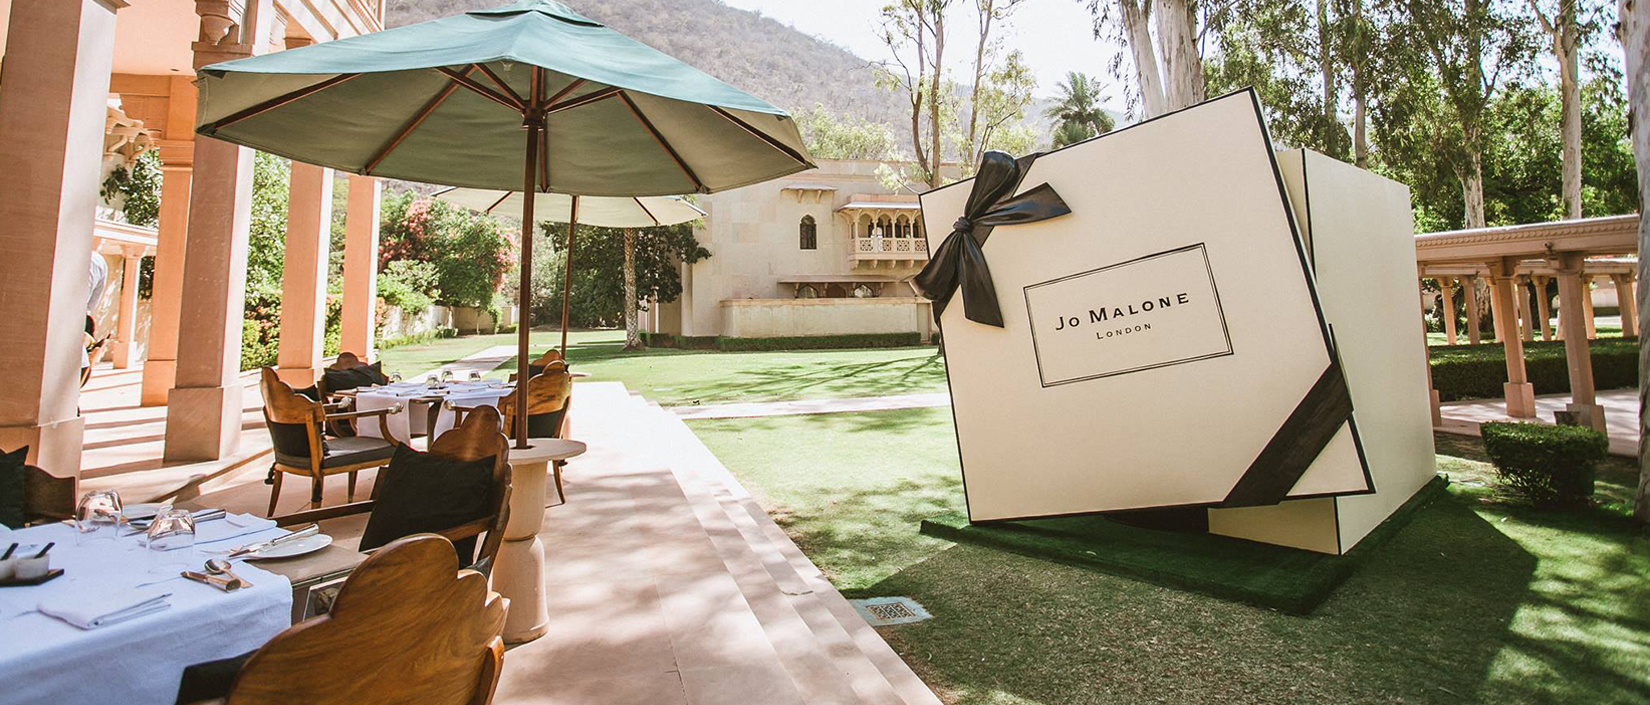 jo malone magnanimous best luxury event agency india